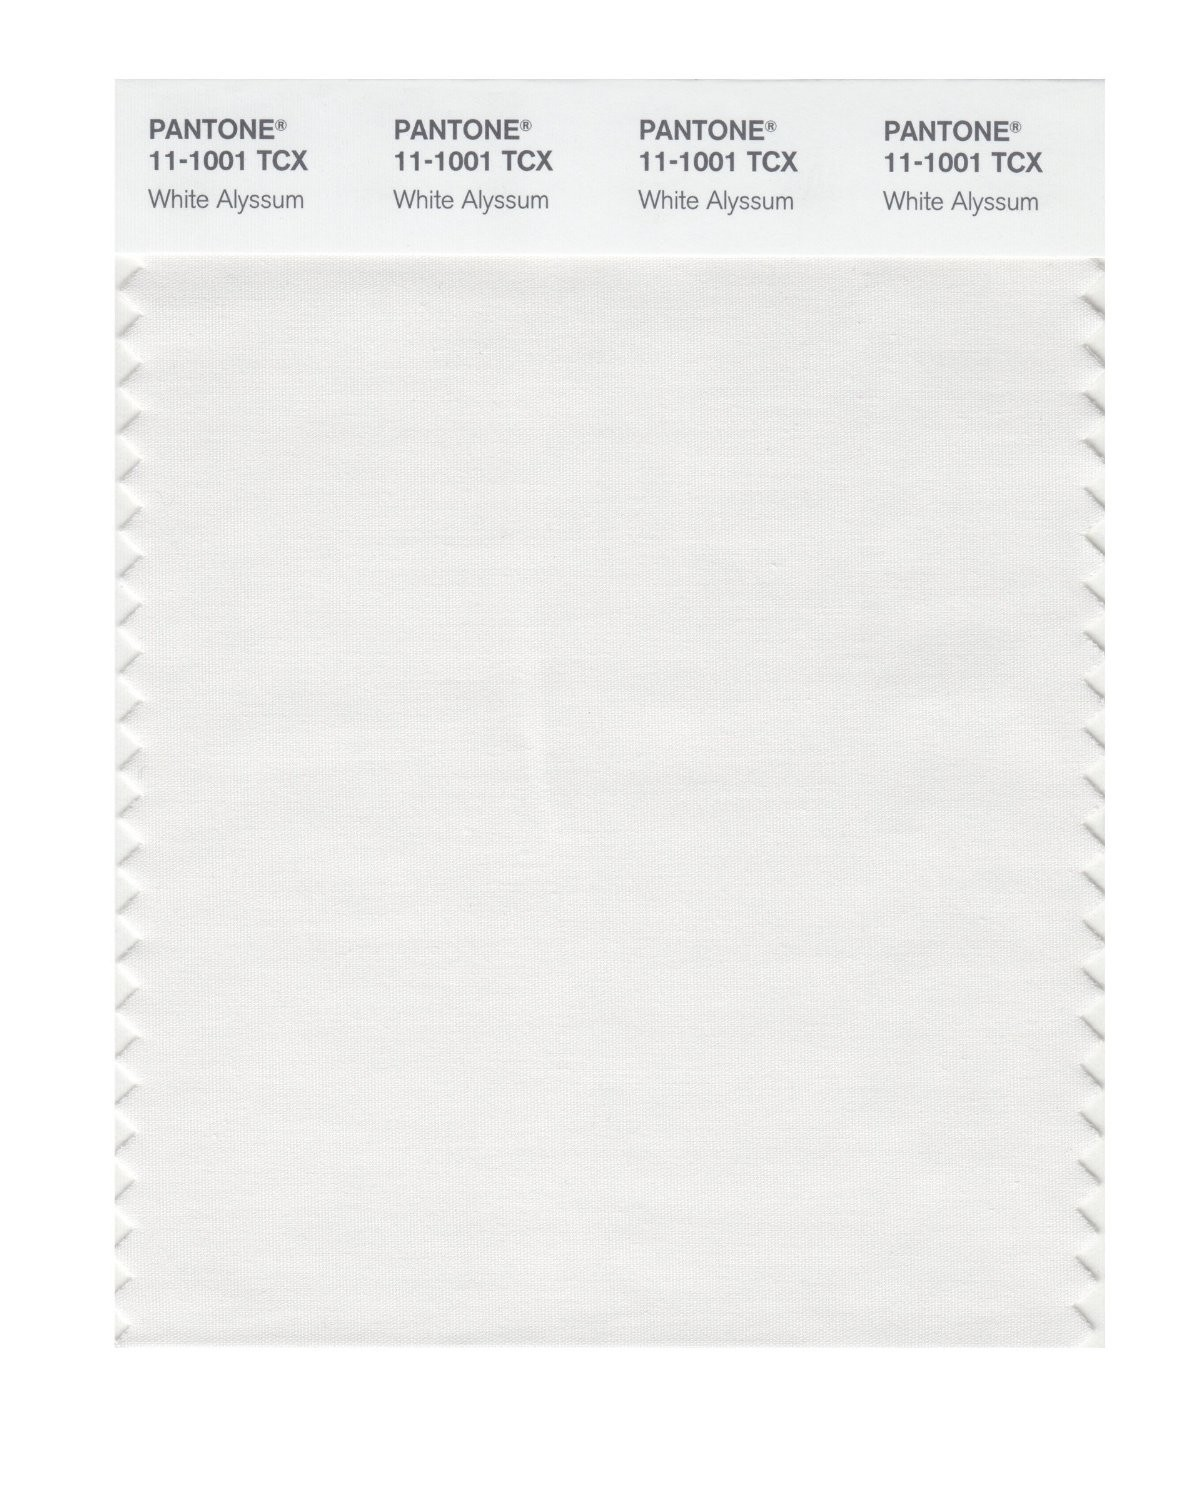 Pantone 11-1001 TCX Swatch Card White Alyssum